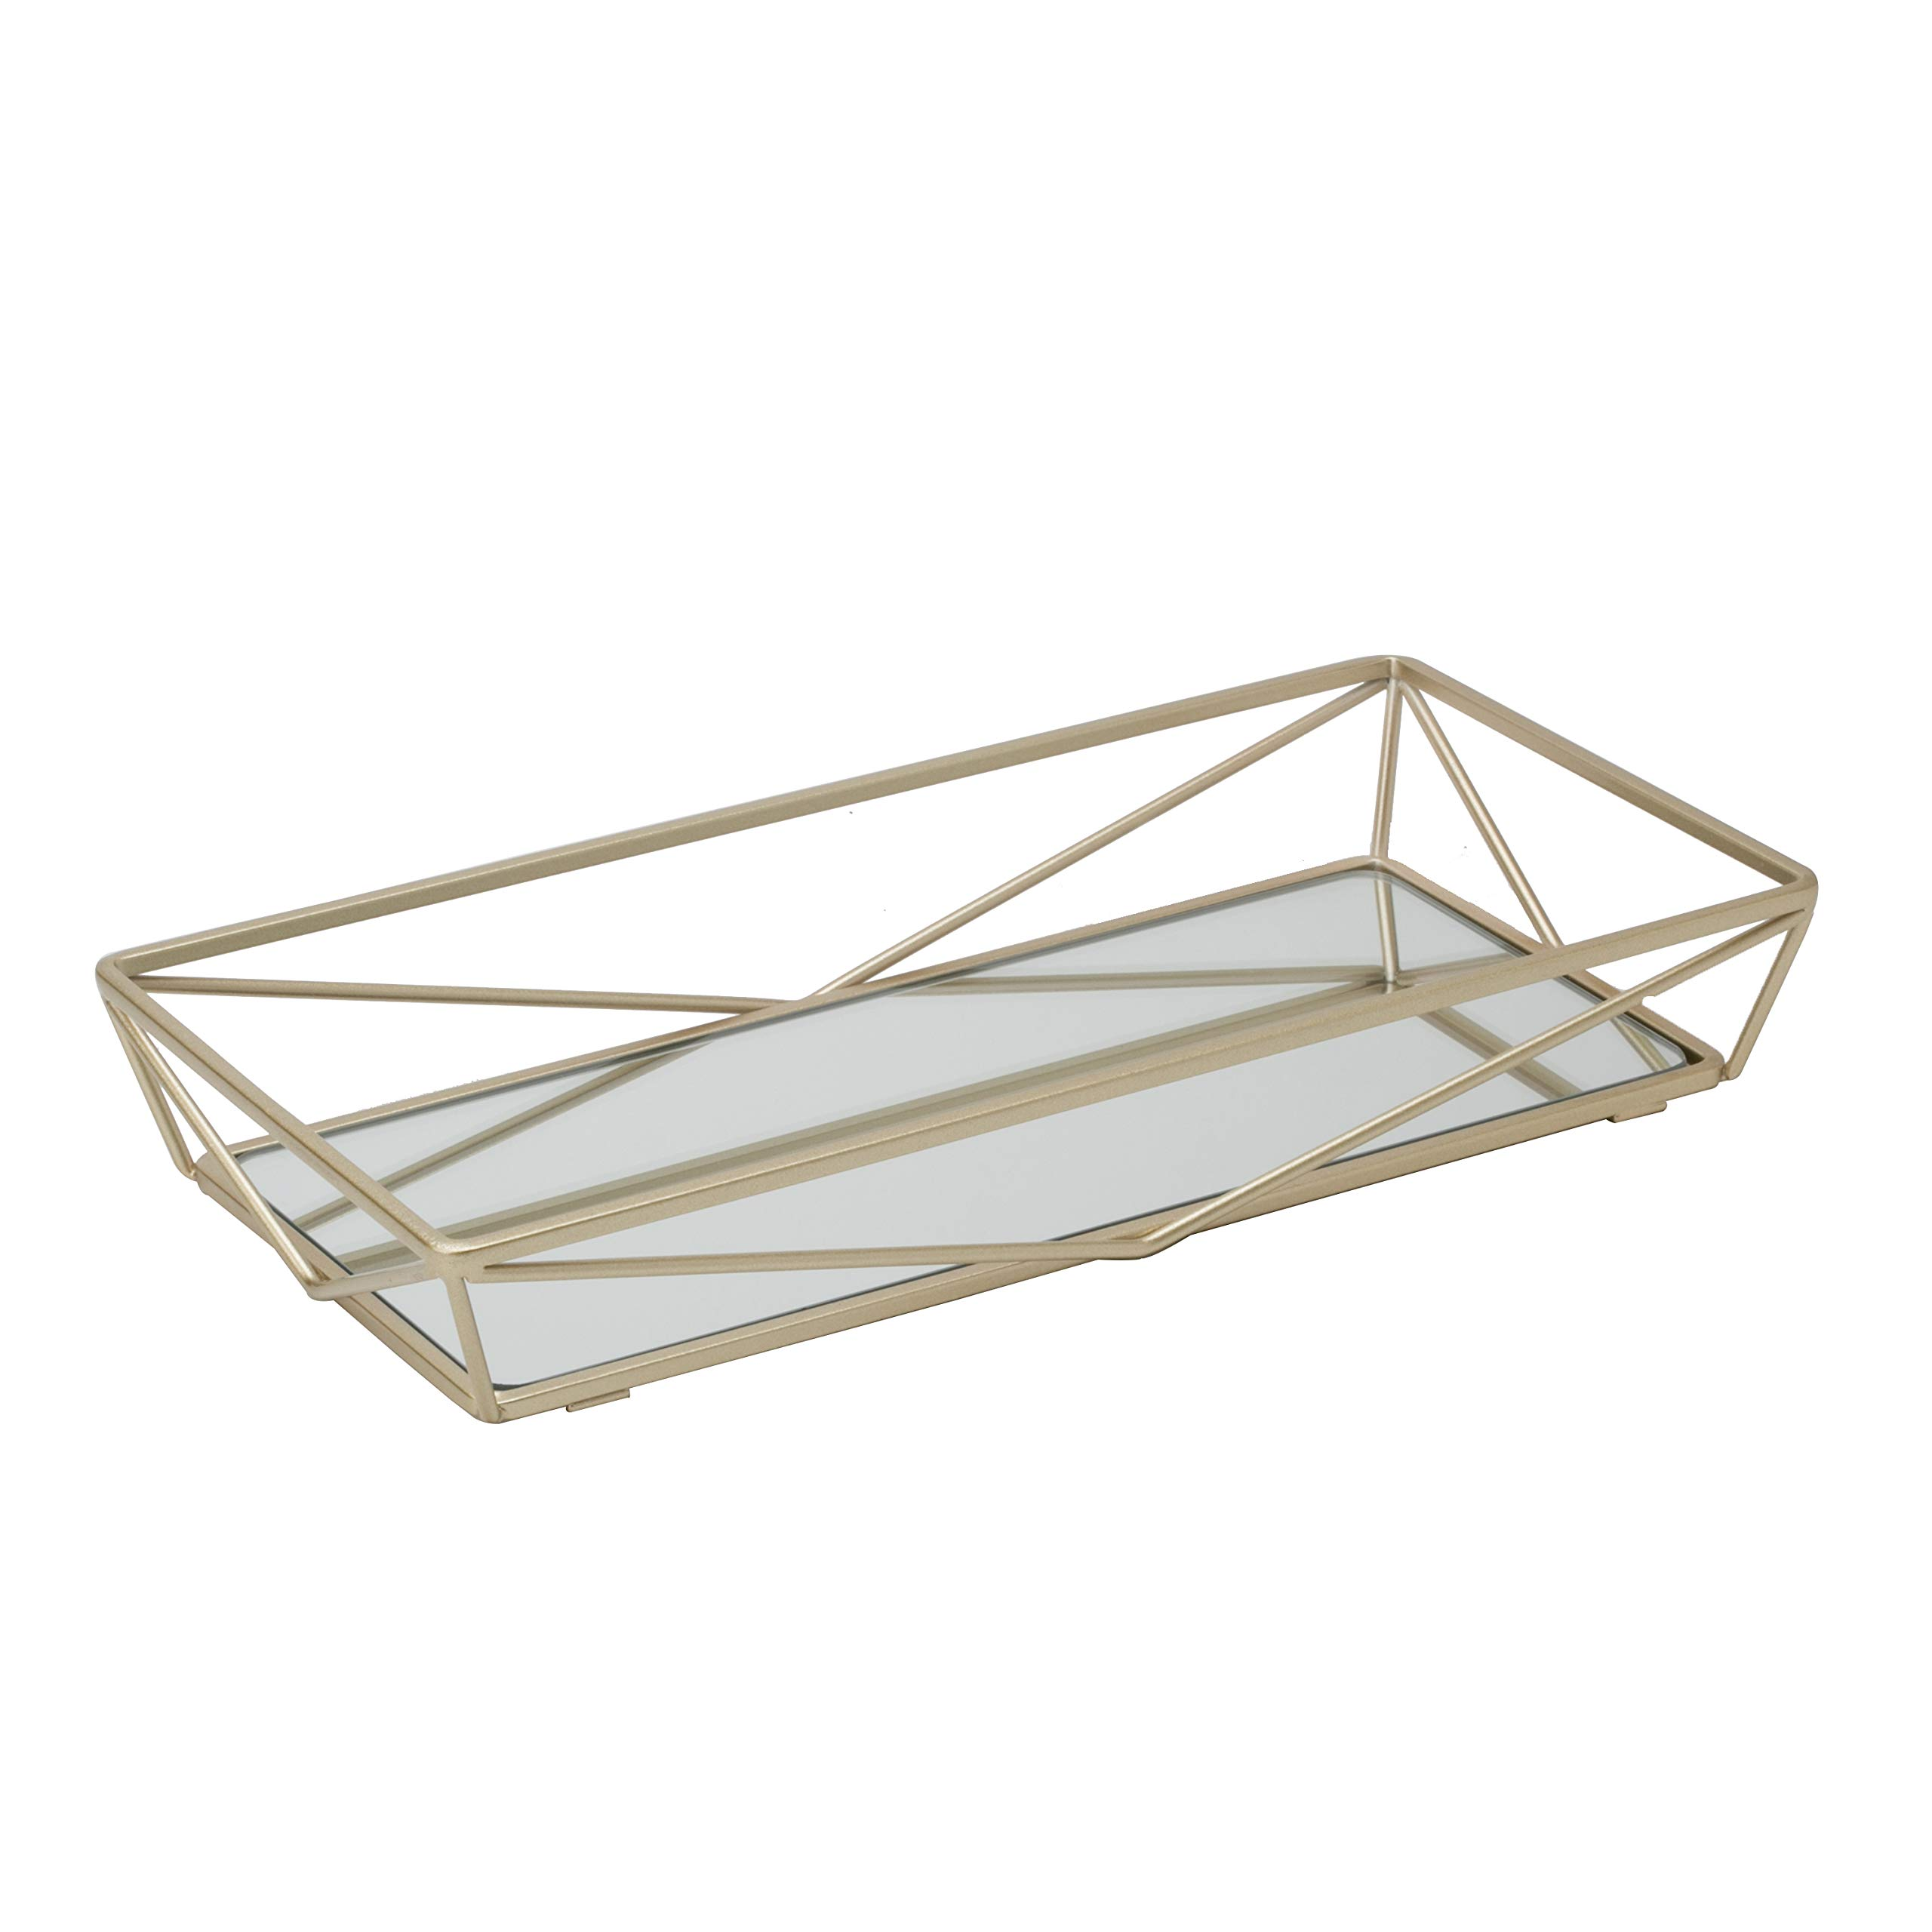 Home Details Mirrored Vanity Tray for Dresser, Perfume, Desk, Cosmetic & Jewelry Organizer, Decorative, Satin Gold by Home Details